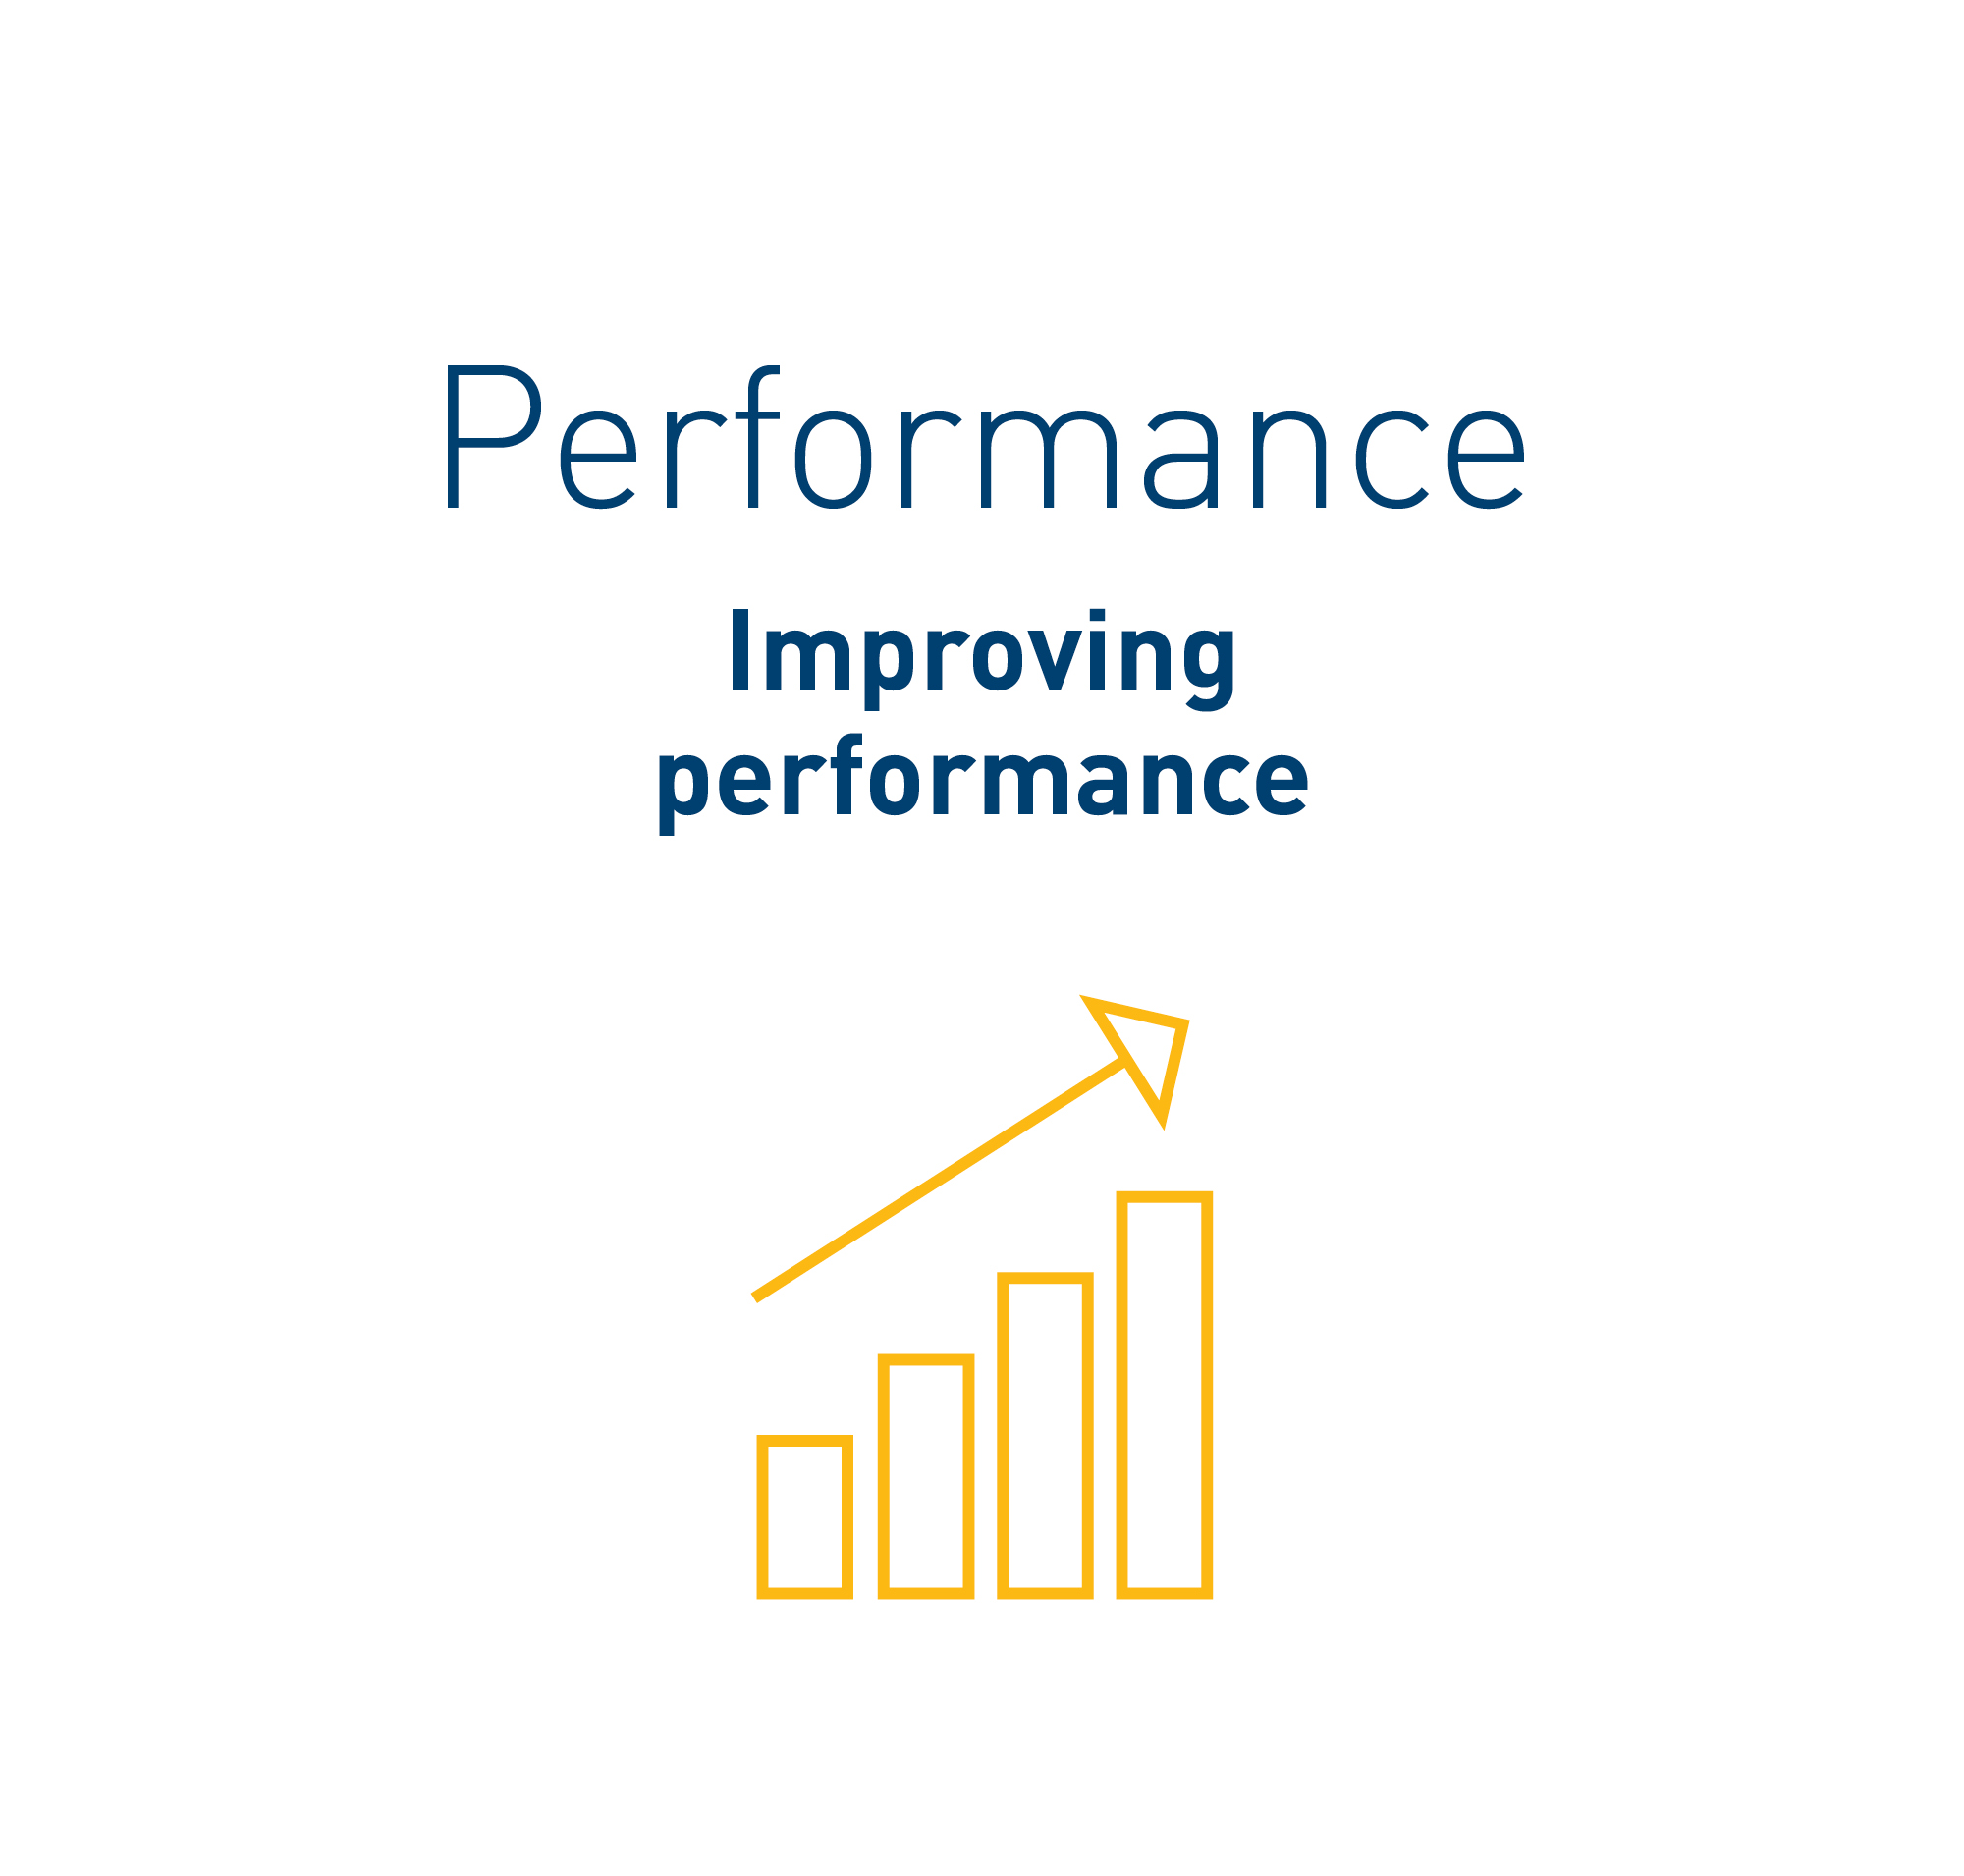 Text in image: Performance – improving performance